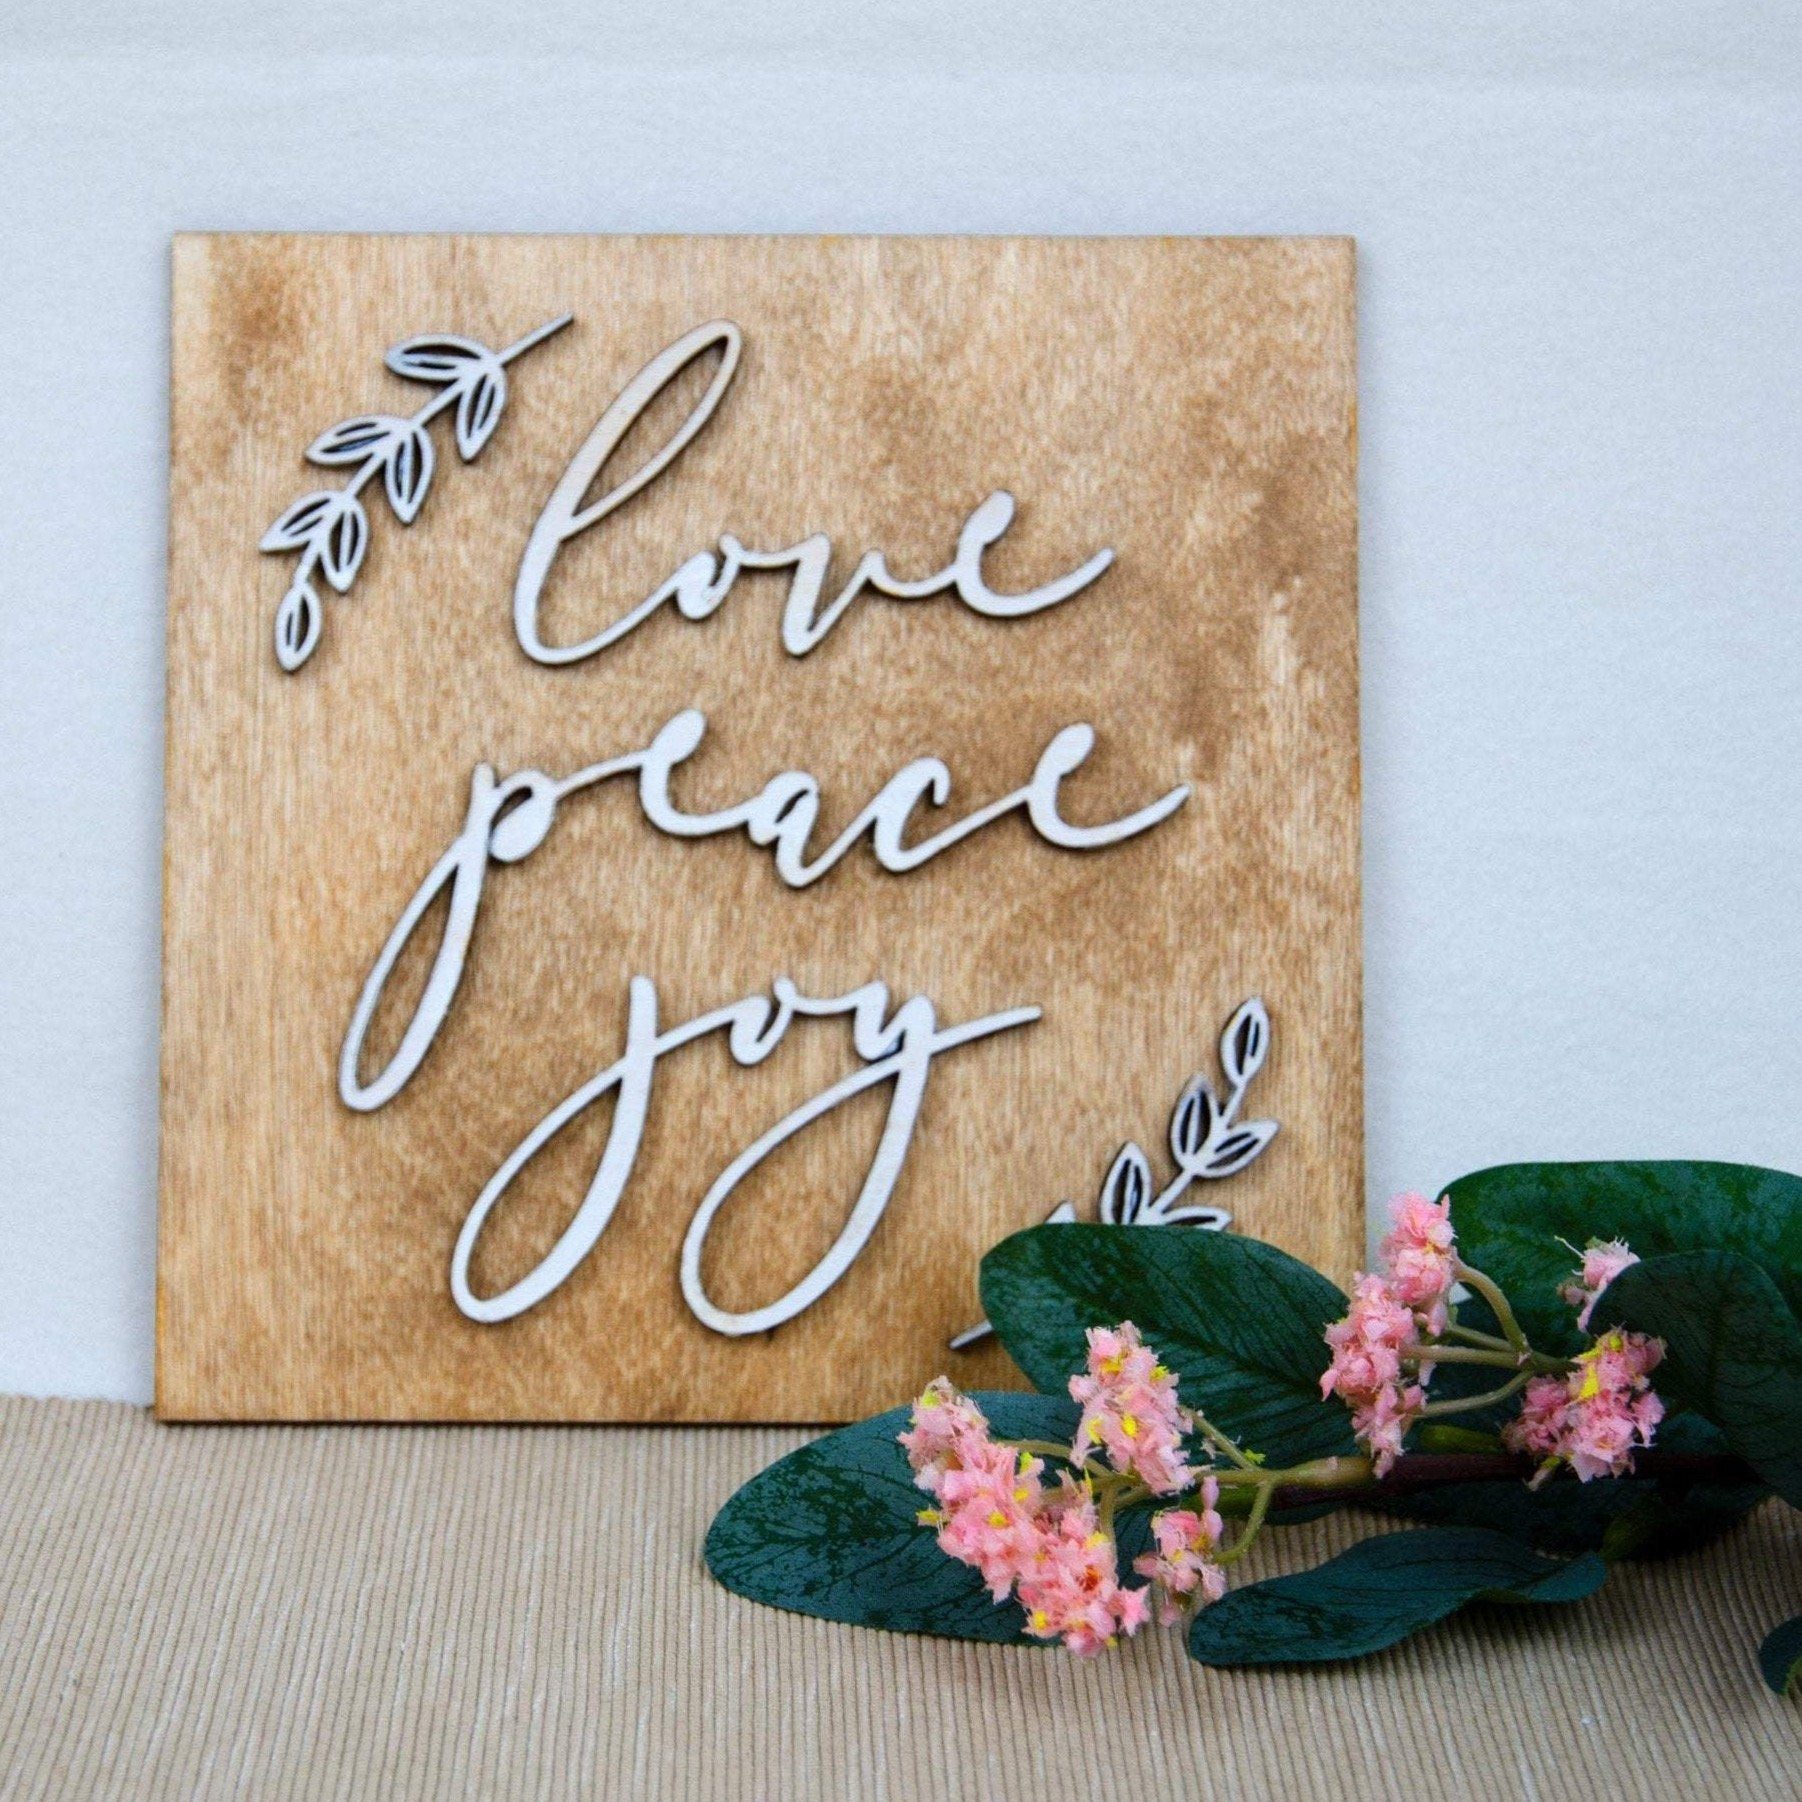 Wedding love joy peace wooden sign